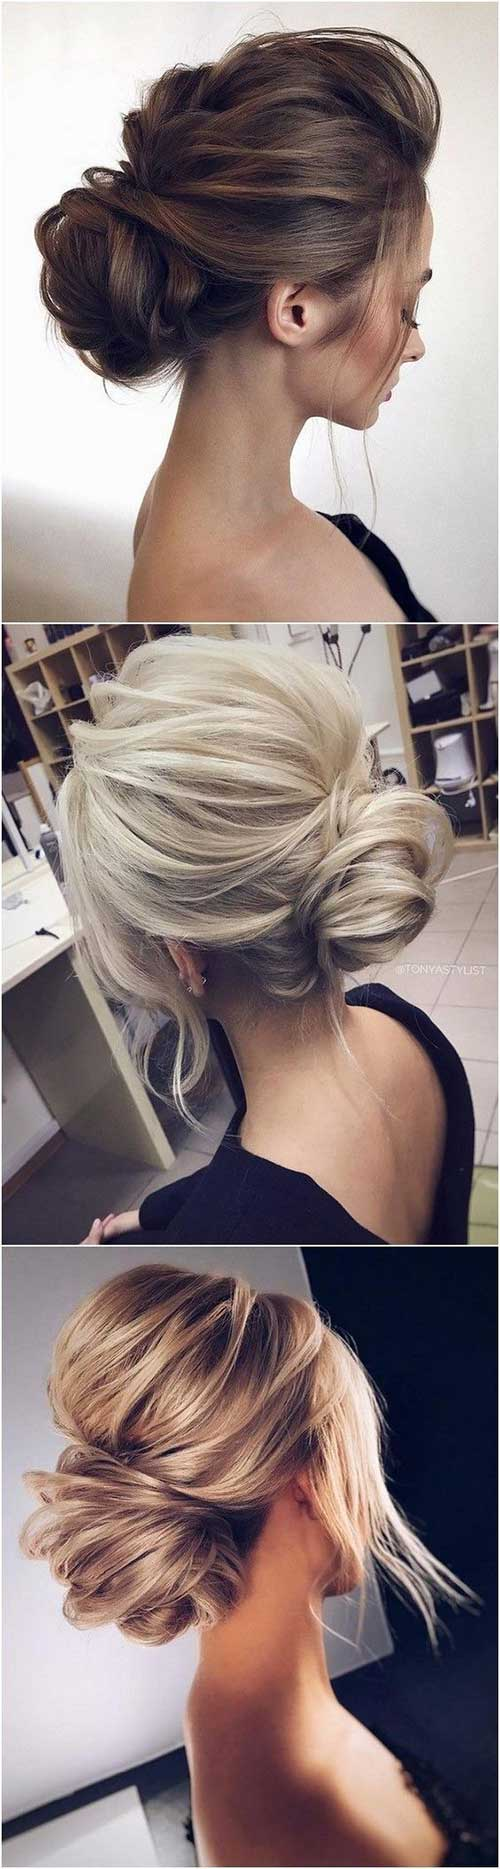 Long Wedding Updo Styles-17